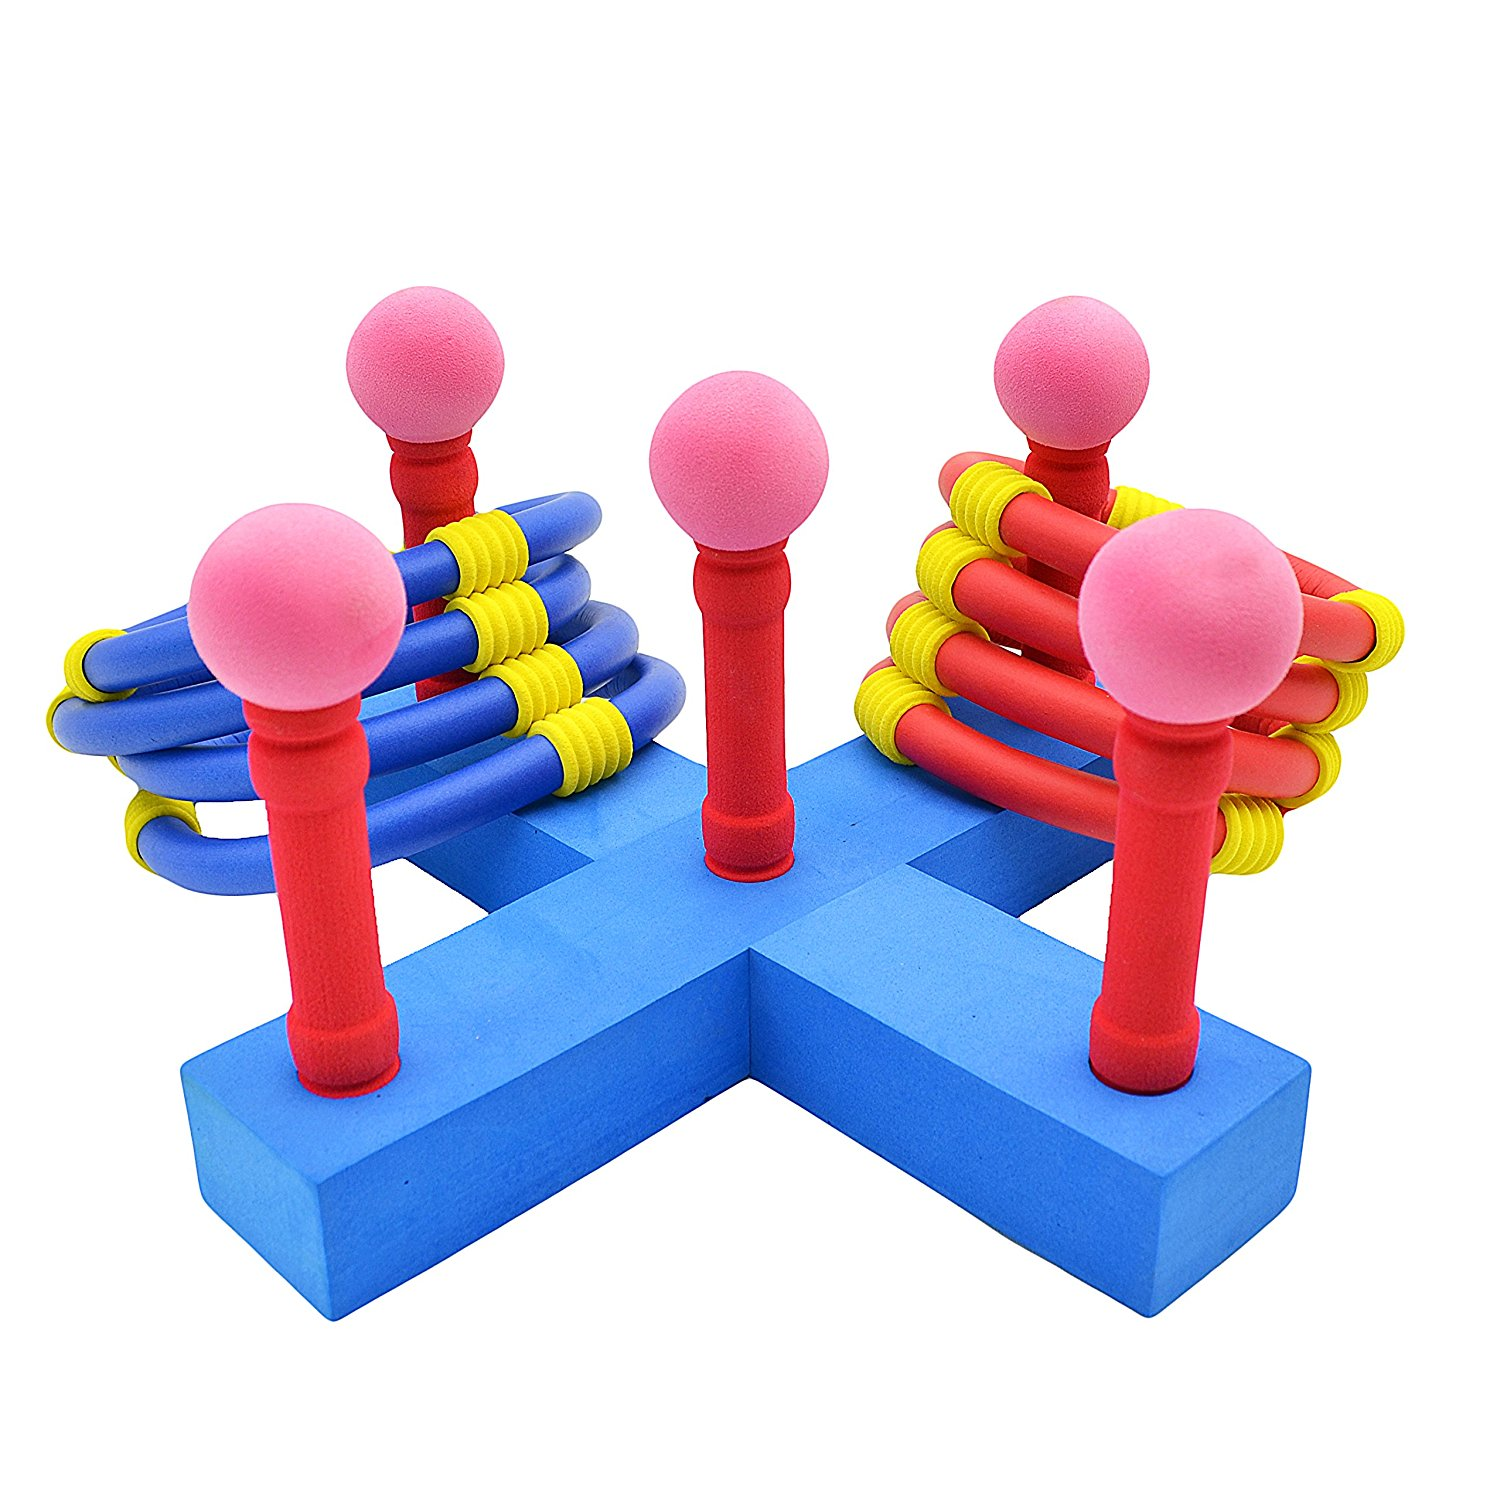 Agirlgle Ring Toss Games For Kids and Outdoor Toys Keep Kids Active-Outdoor Kids Games for Tailgating, Camping, Backyard and Garden- Easy to Assemble and Made of EVA Foam Soft Materials Safety for Kid